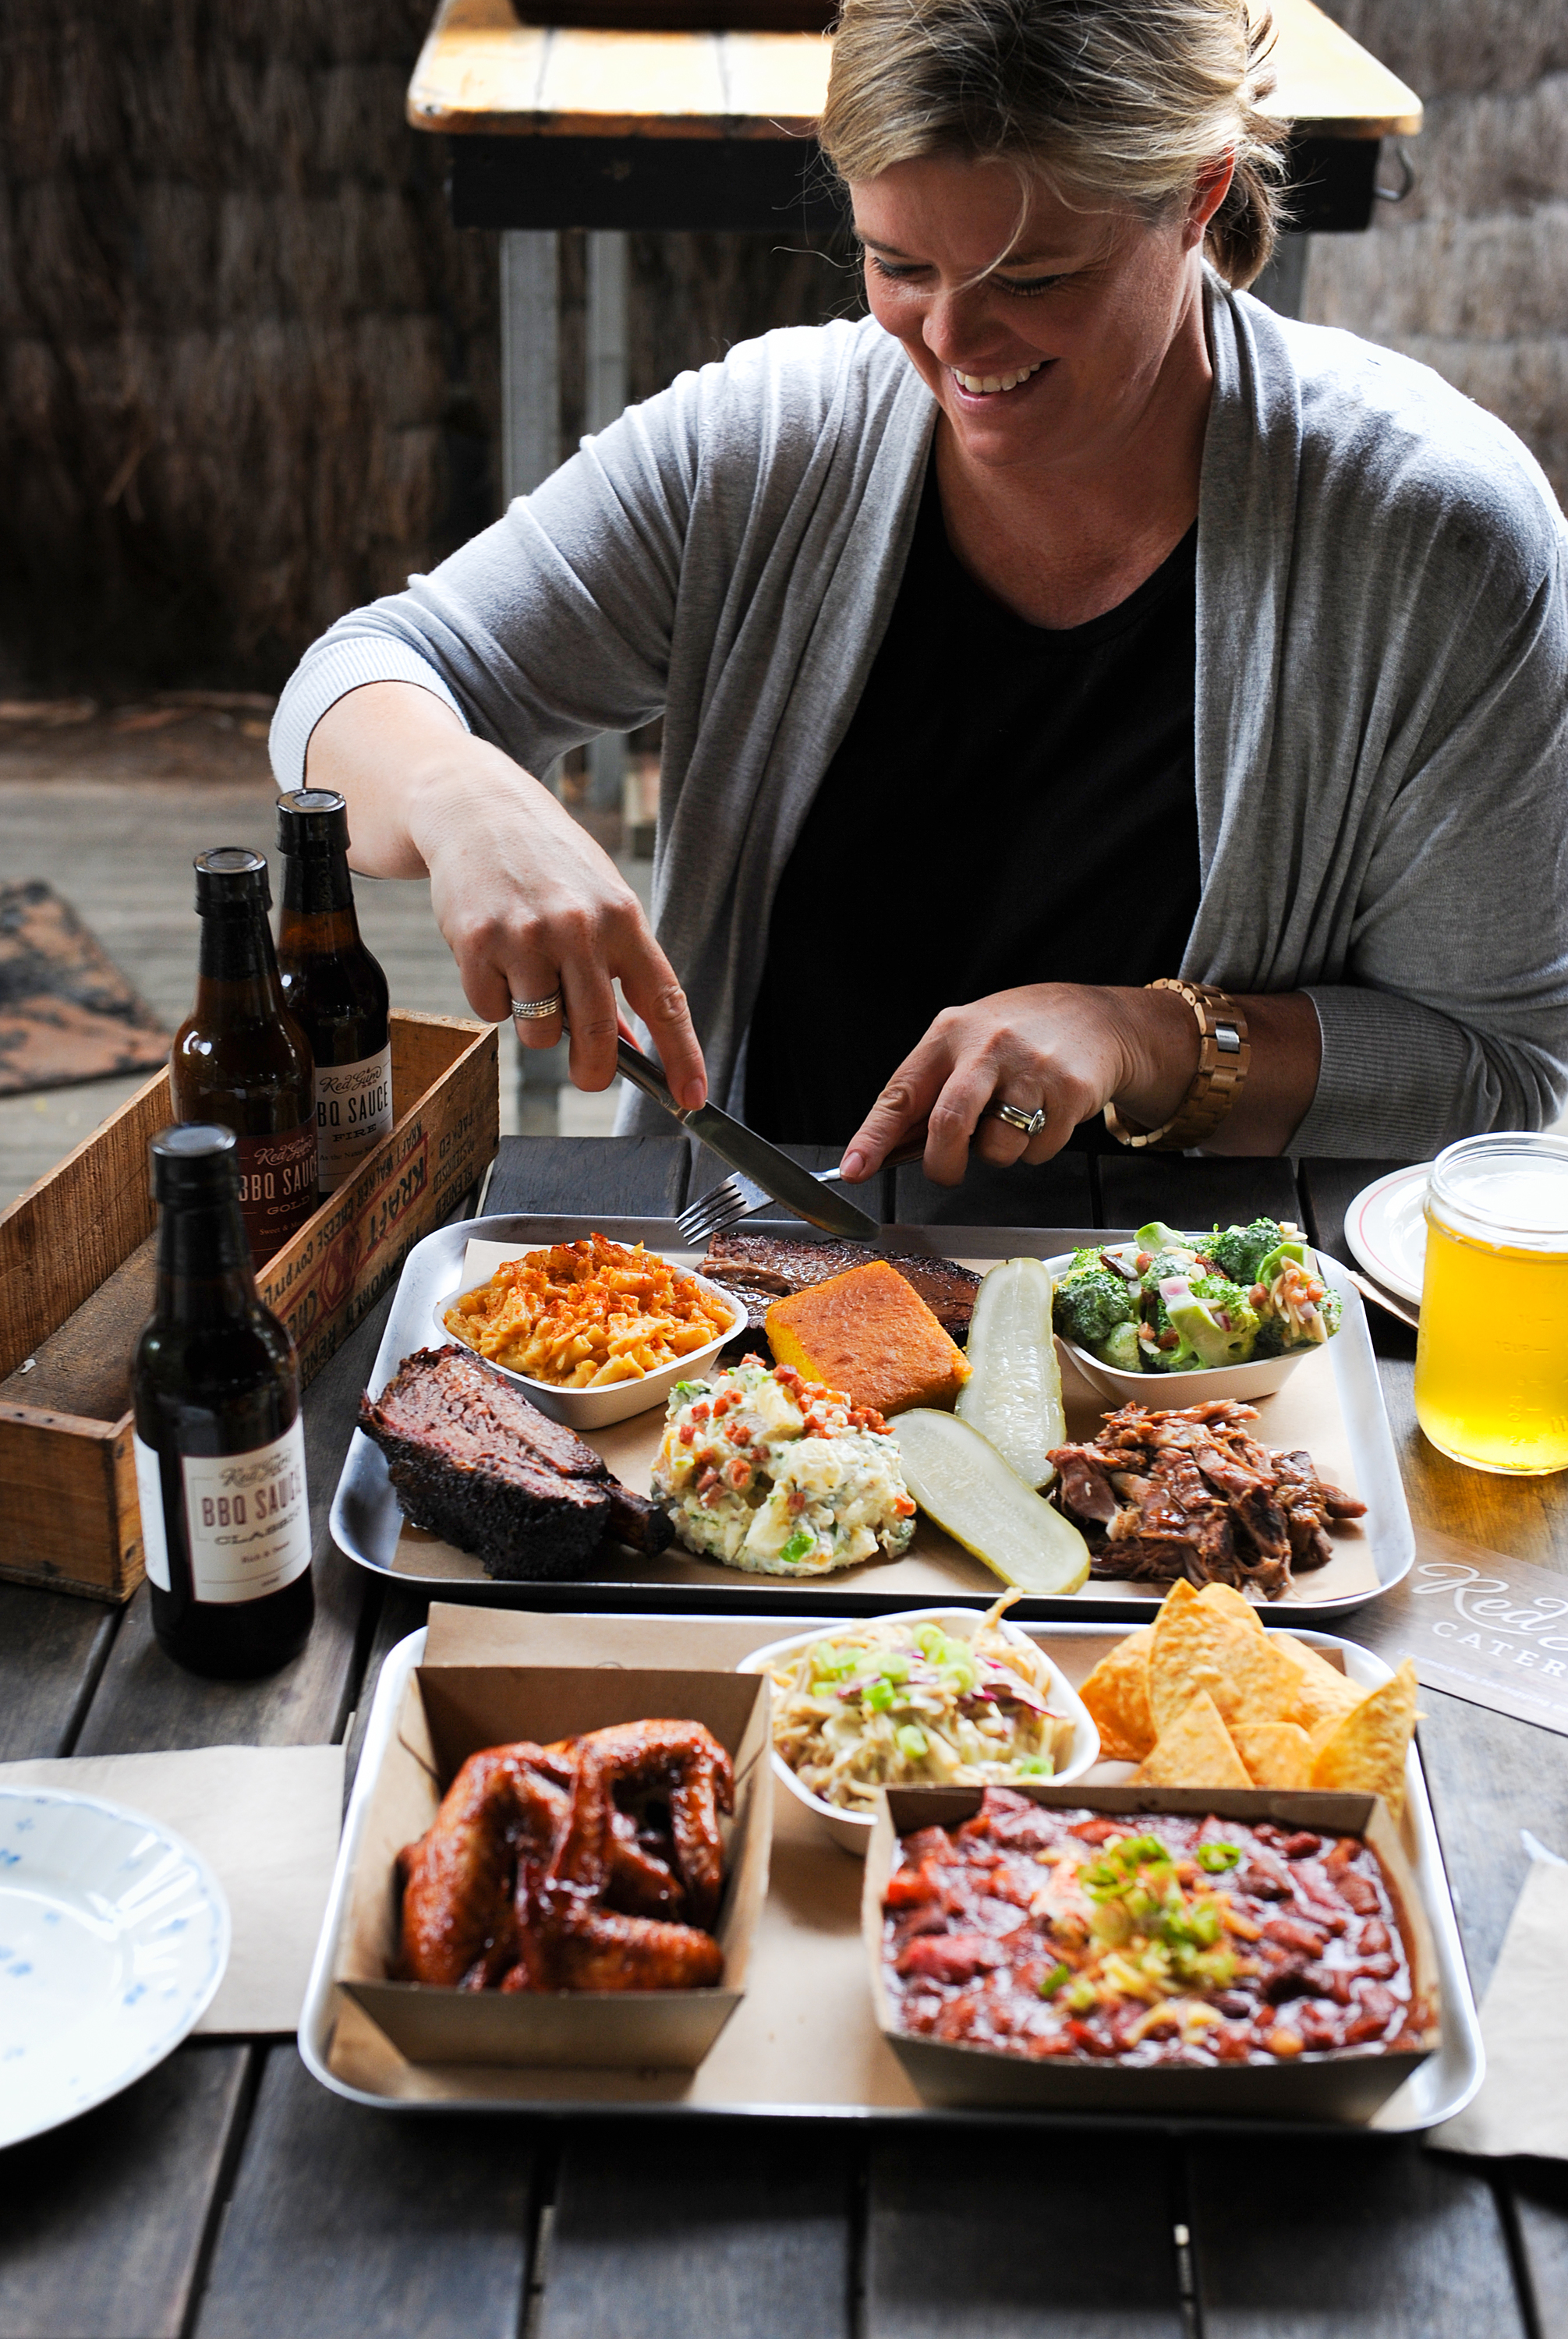 A woman holds a knife and fork over two plates of barbecue and sides